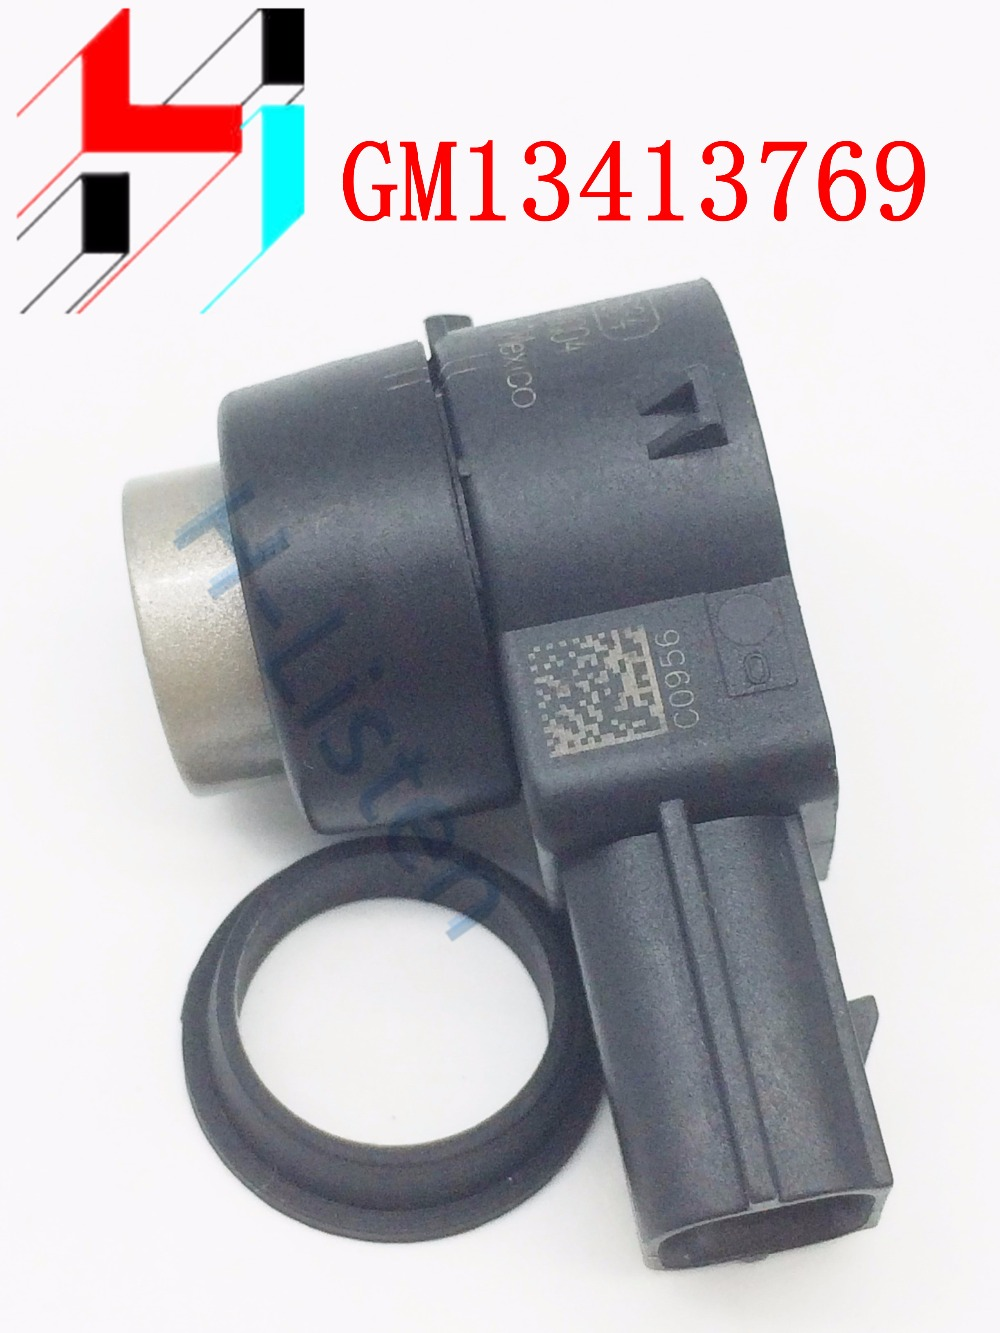 For BMW Backup Reverse Aid Object Parking Sensor PDC 66206989160 66206989068